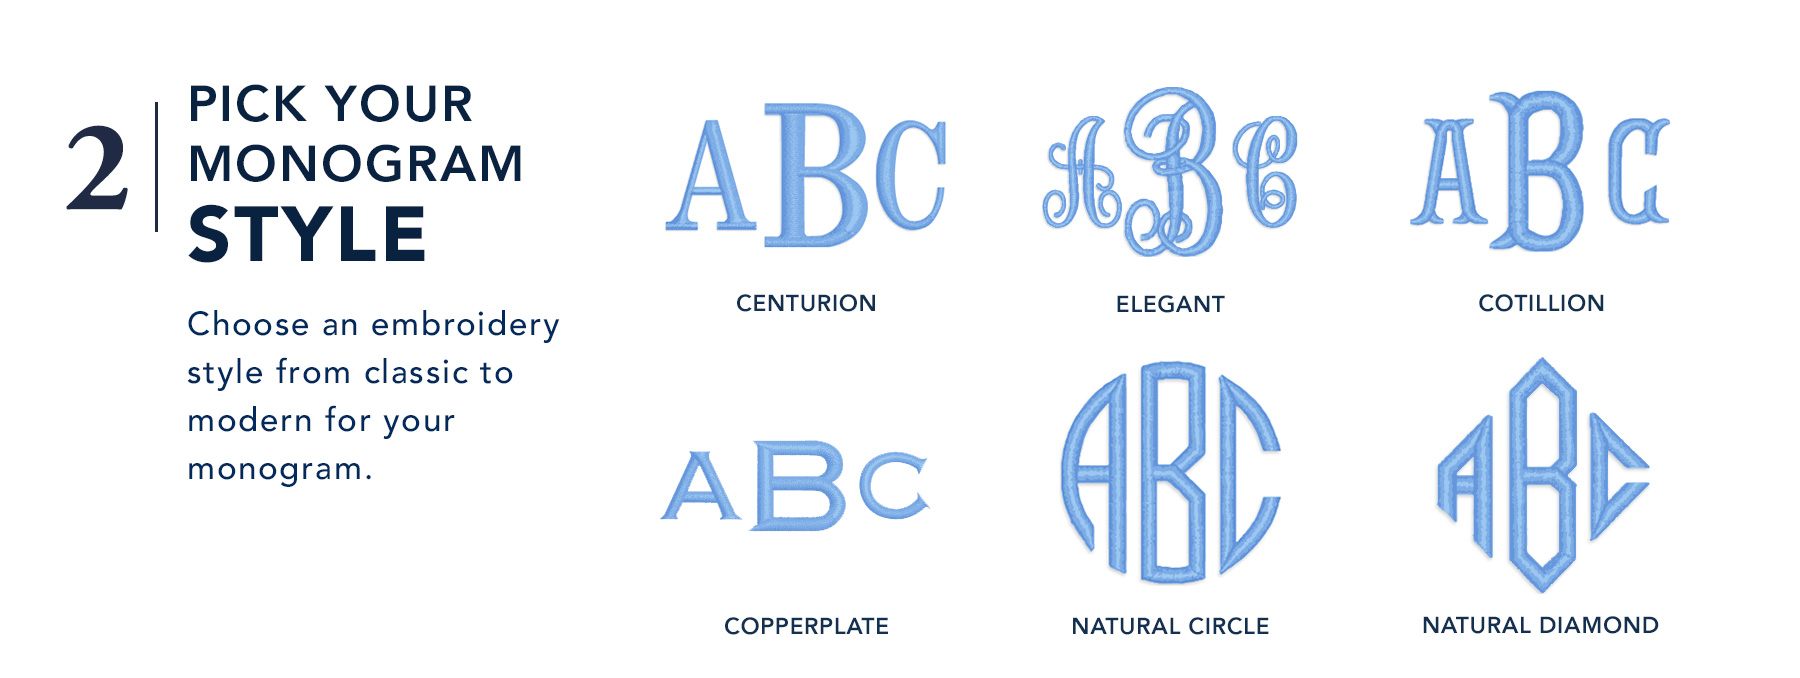 2. Pick your monogram style - Choose an embroidery style from classic to modern for your monogram.